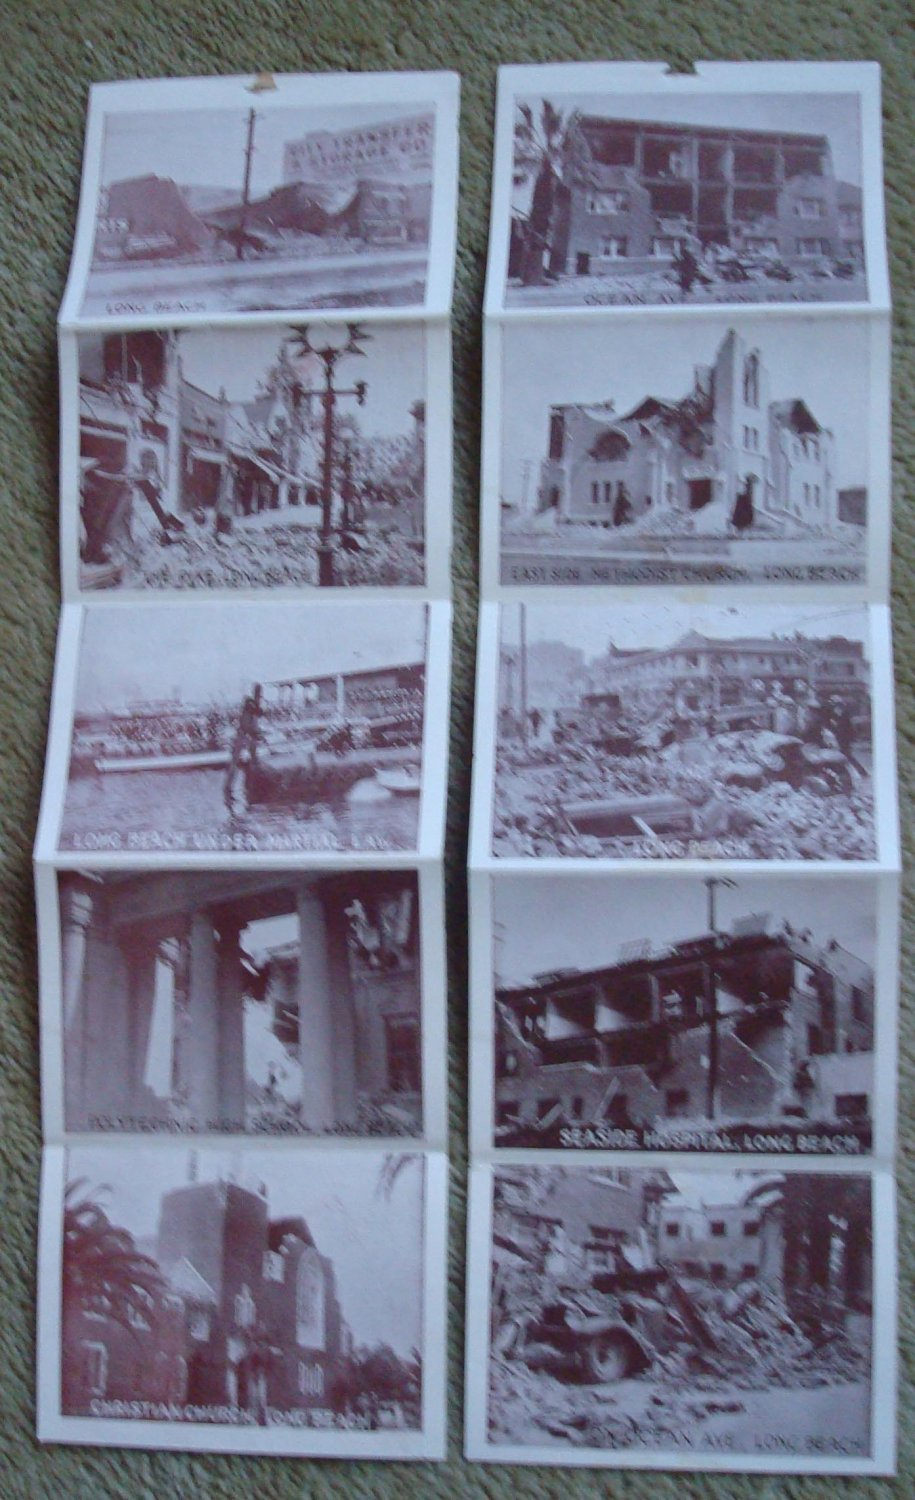 1933 Southern California Earthquake - Long Beach Pictures